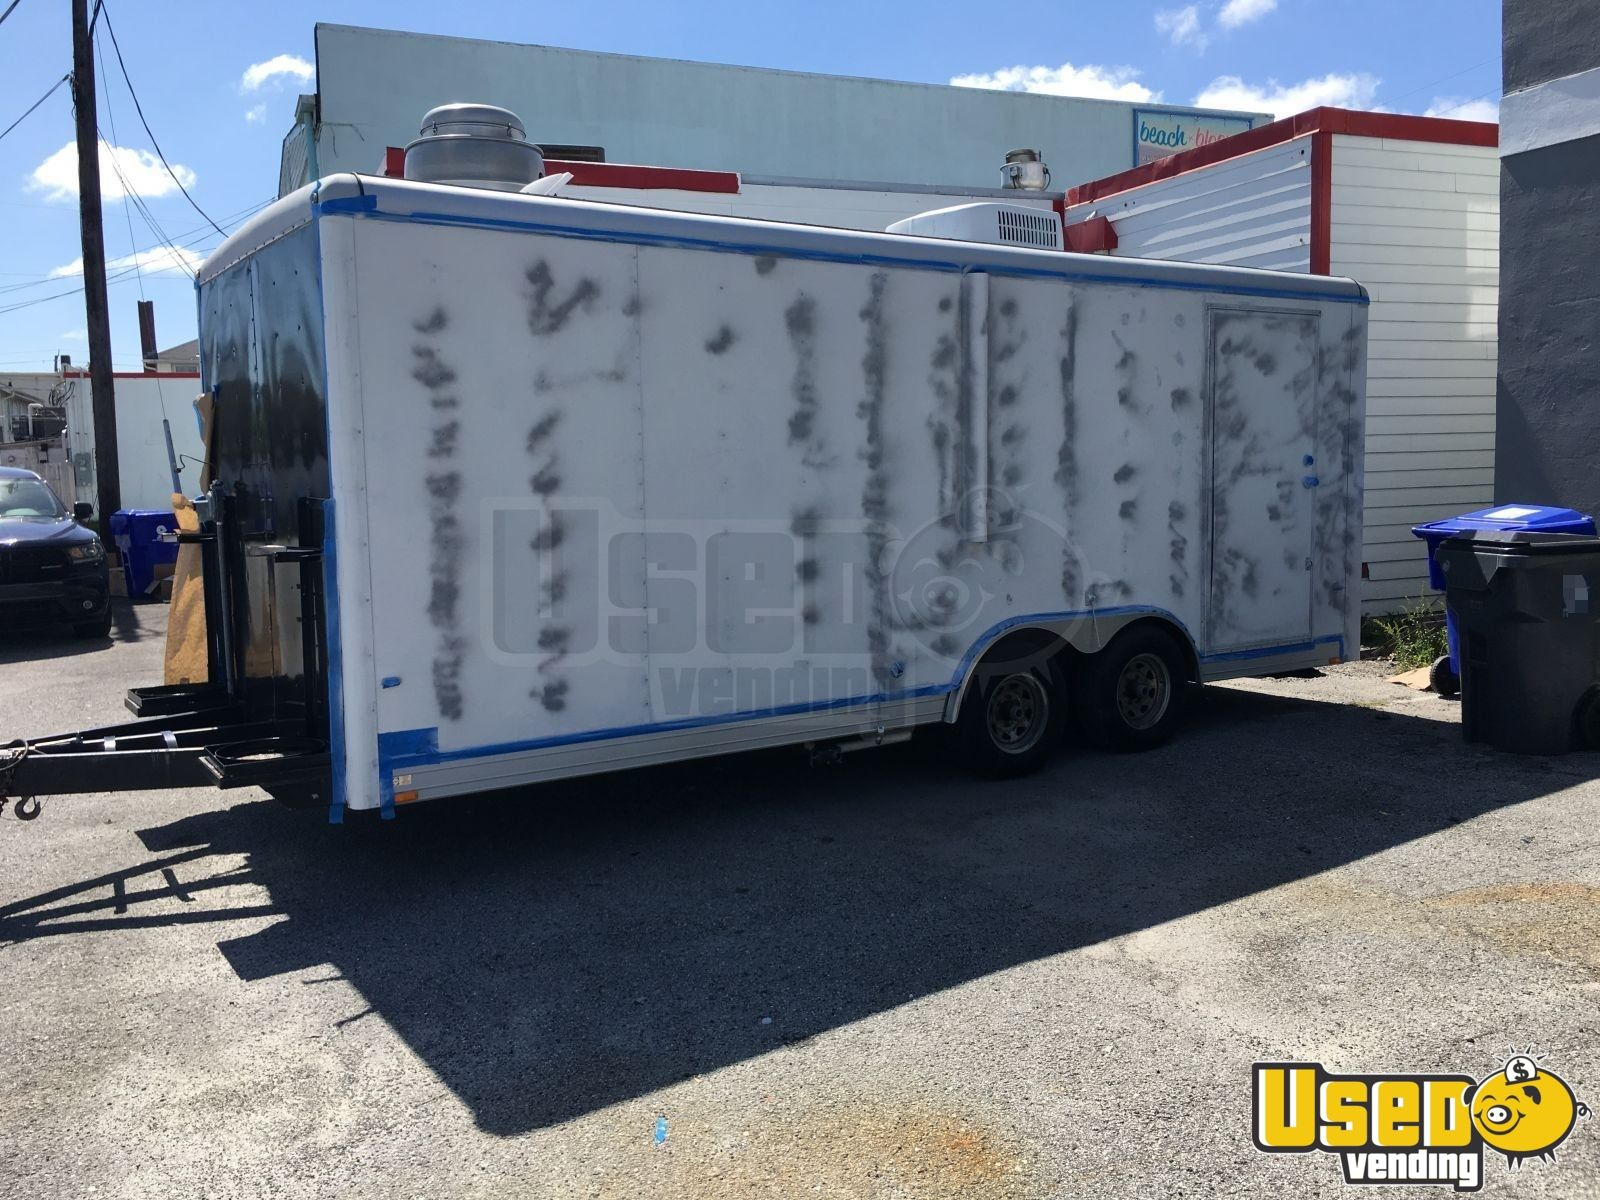 2007 Wells Cargo All-purpose Food Trailer Oven North Carolina for Sale - 15